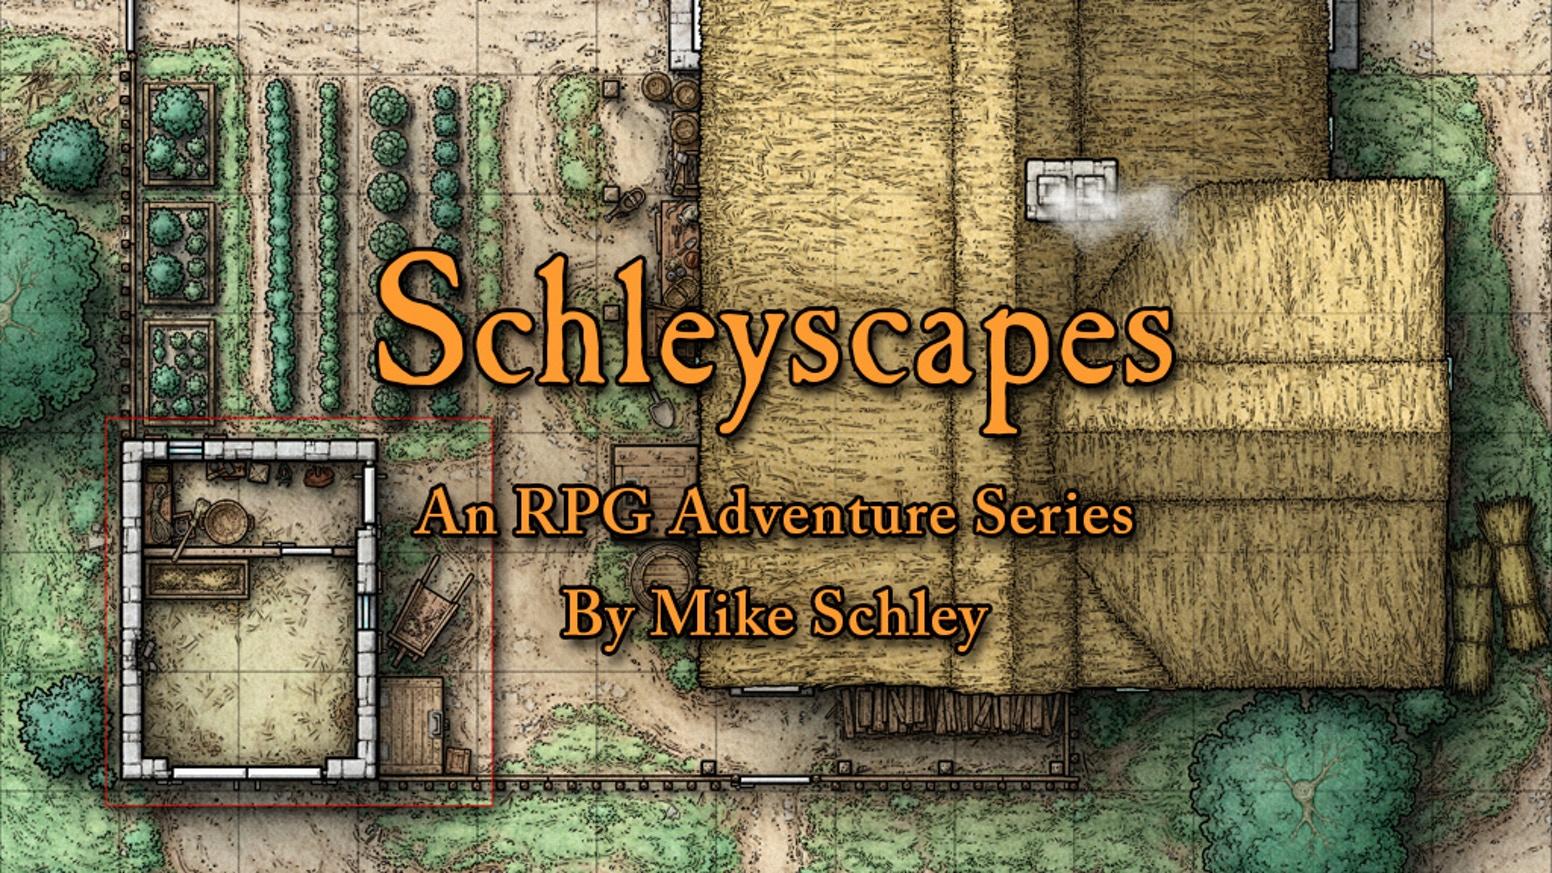 Within Schleyscapes, the new adventure series by Mike Schley, you'll find maps, art, & ideas to enrich your tabletop RPG campaign.